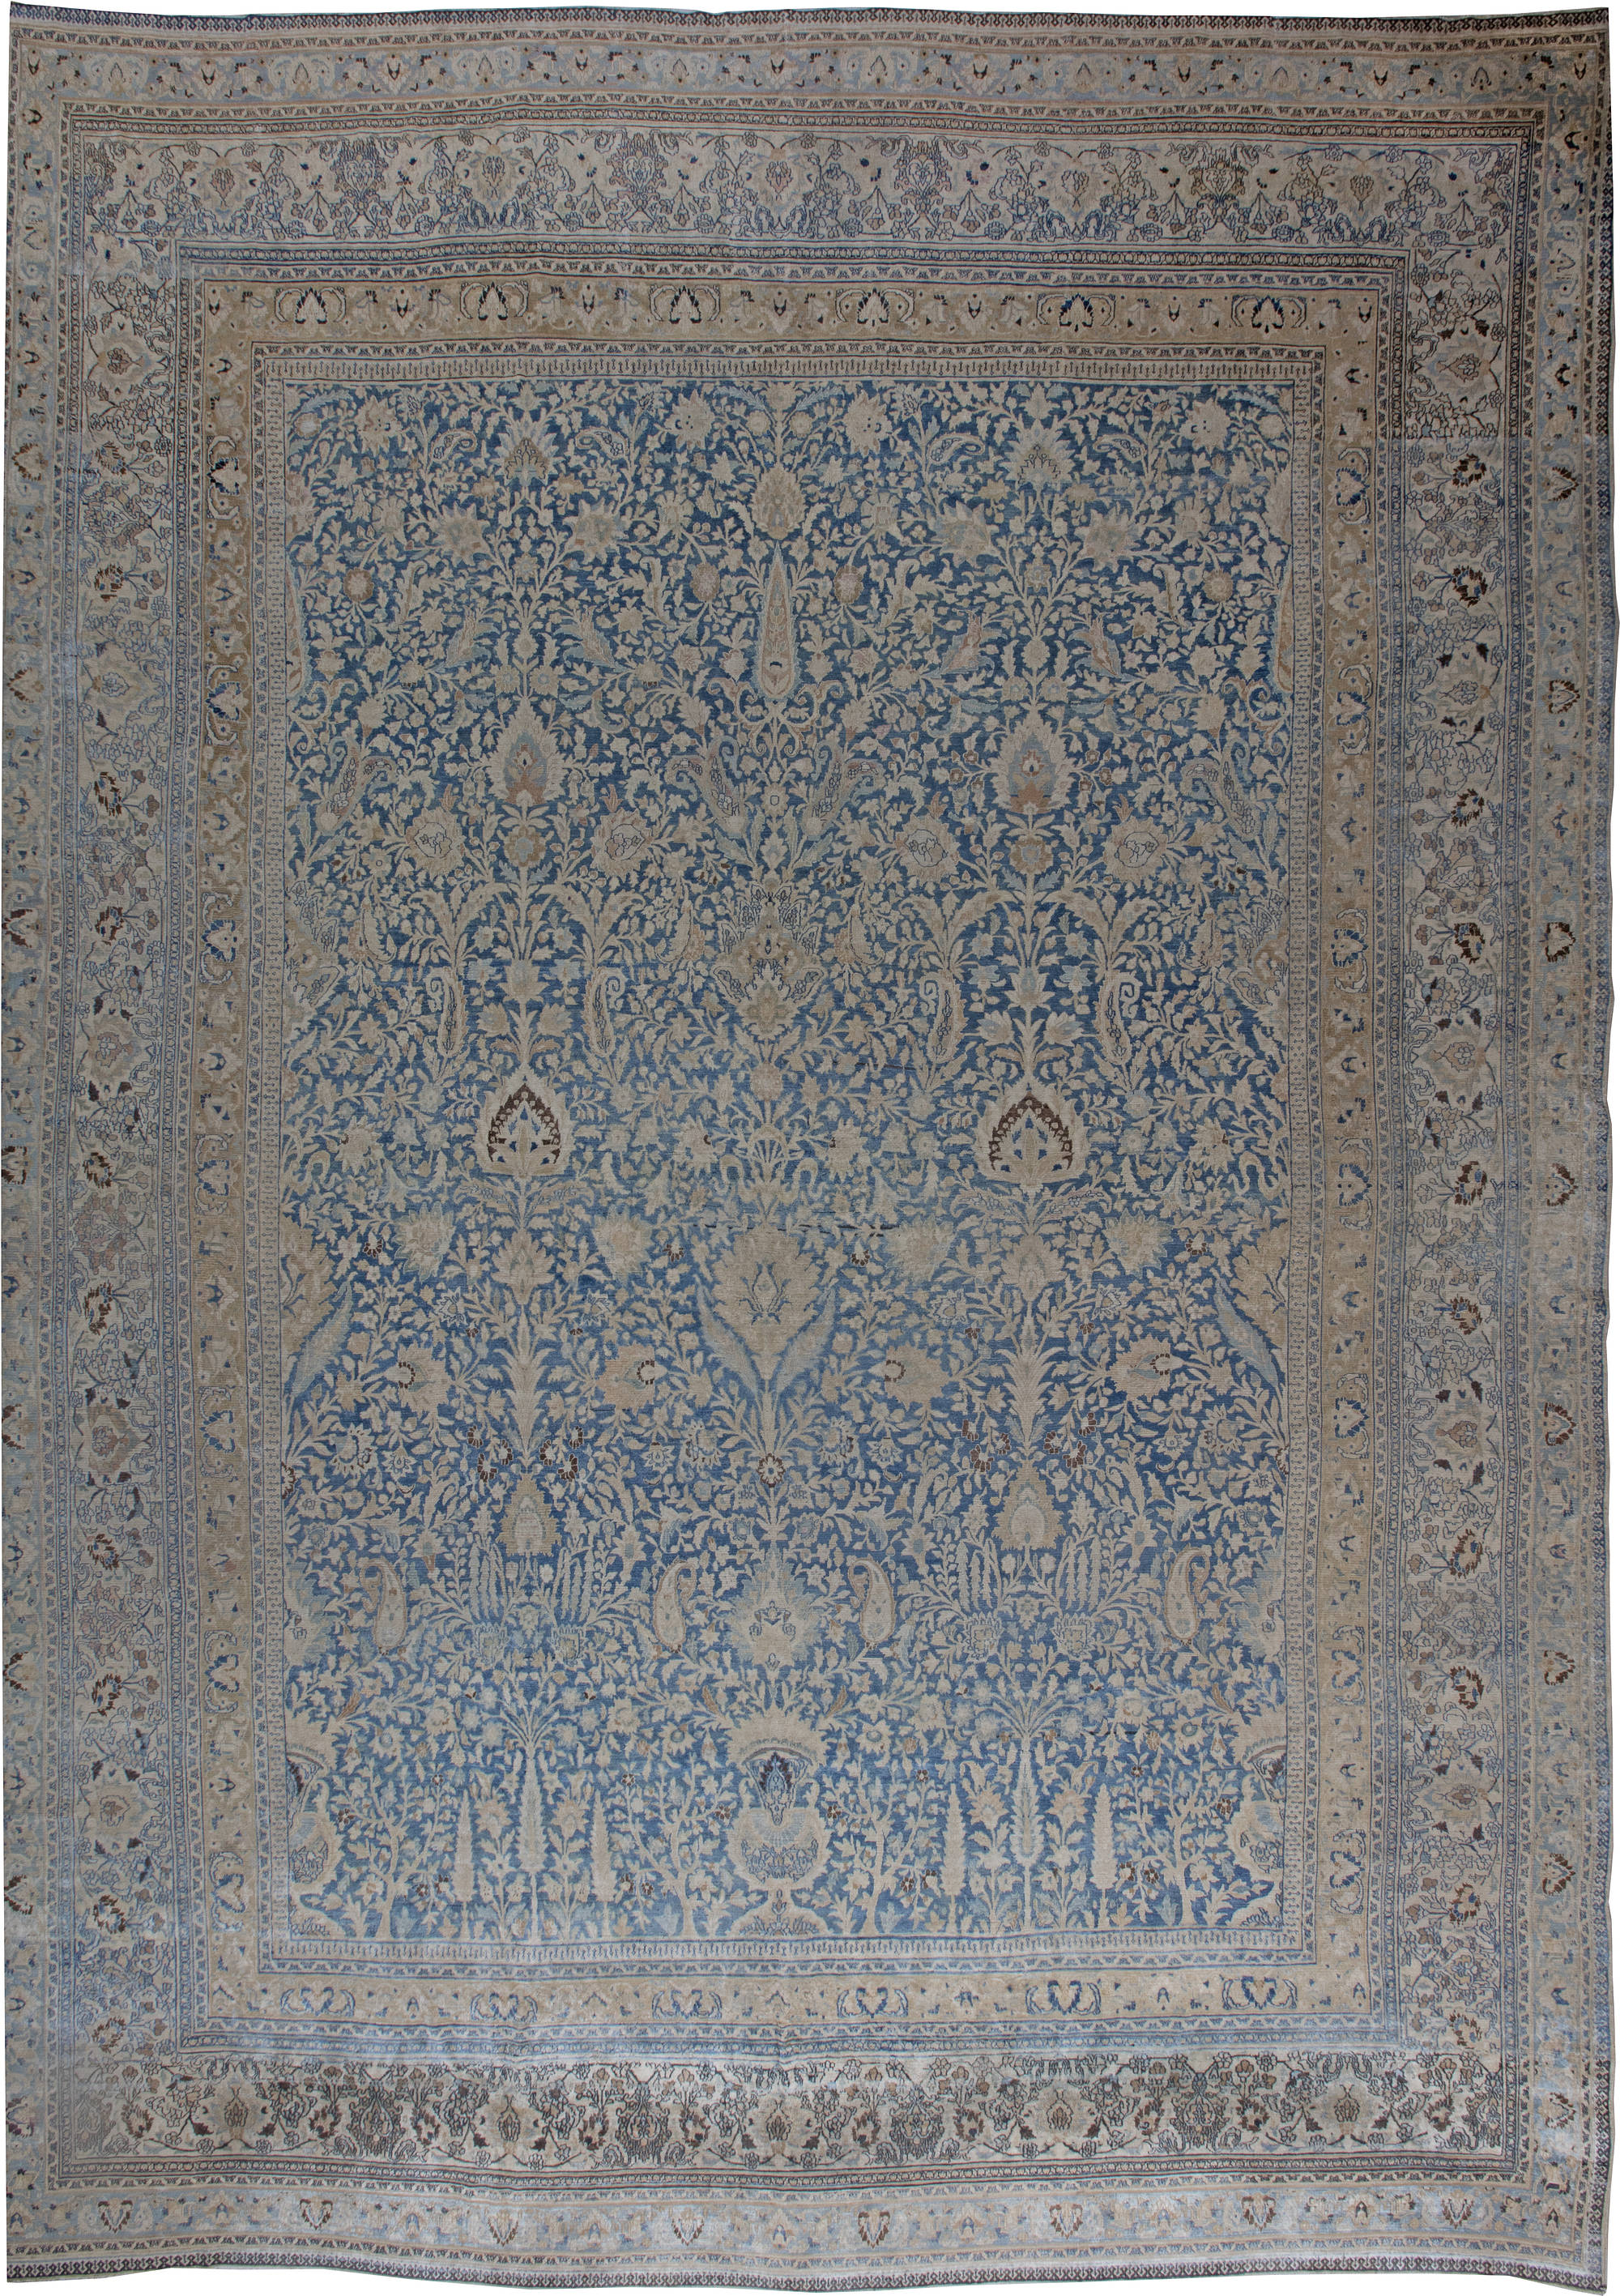 Khorassan Rugs From New York Gallery Doris Leslie Blau